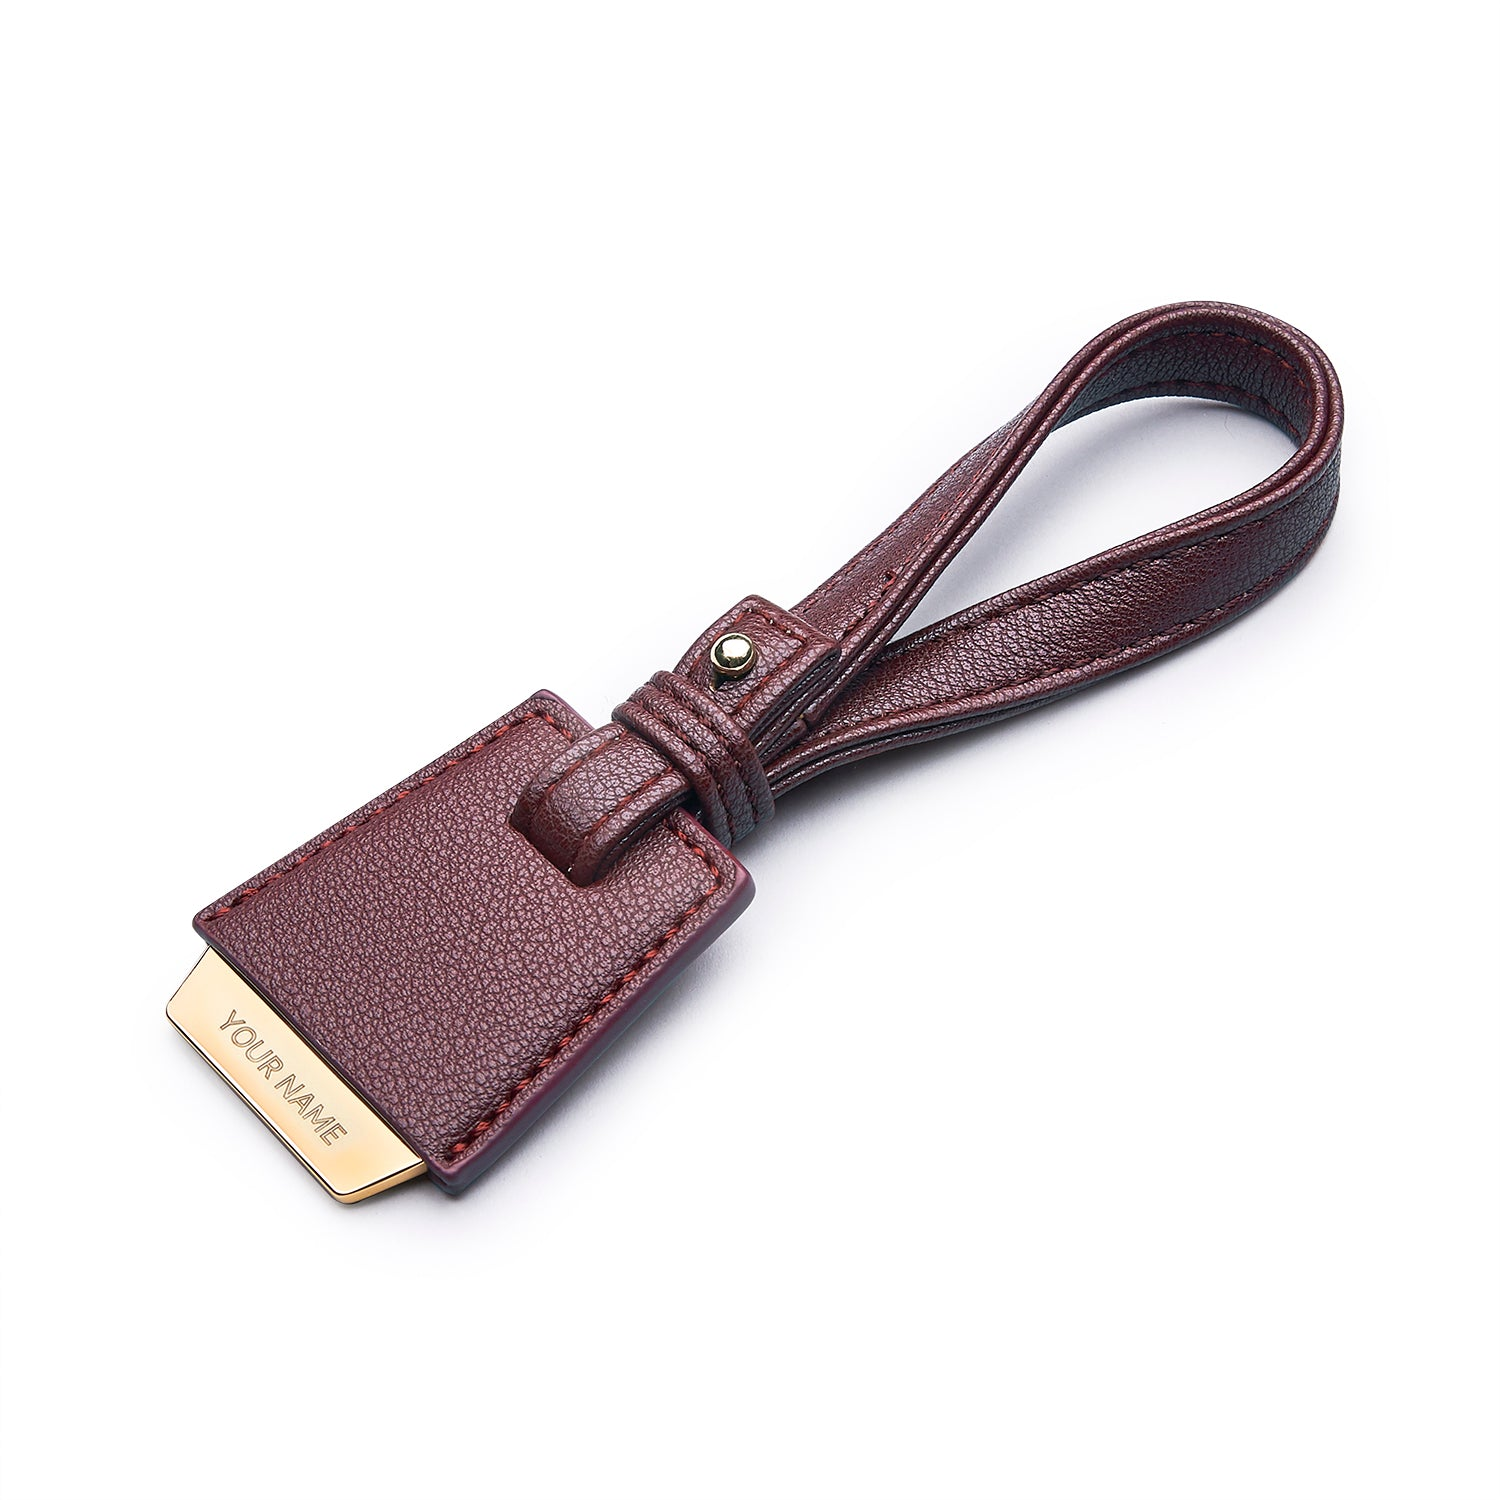 COLEY BAG TAG - MAROON